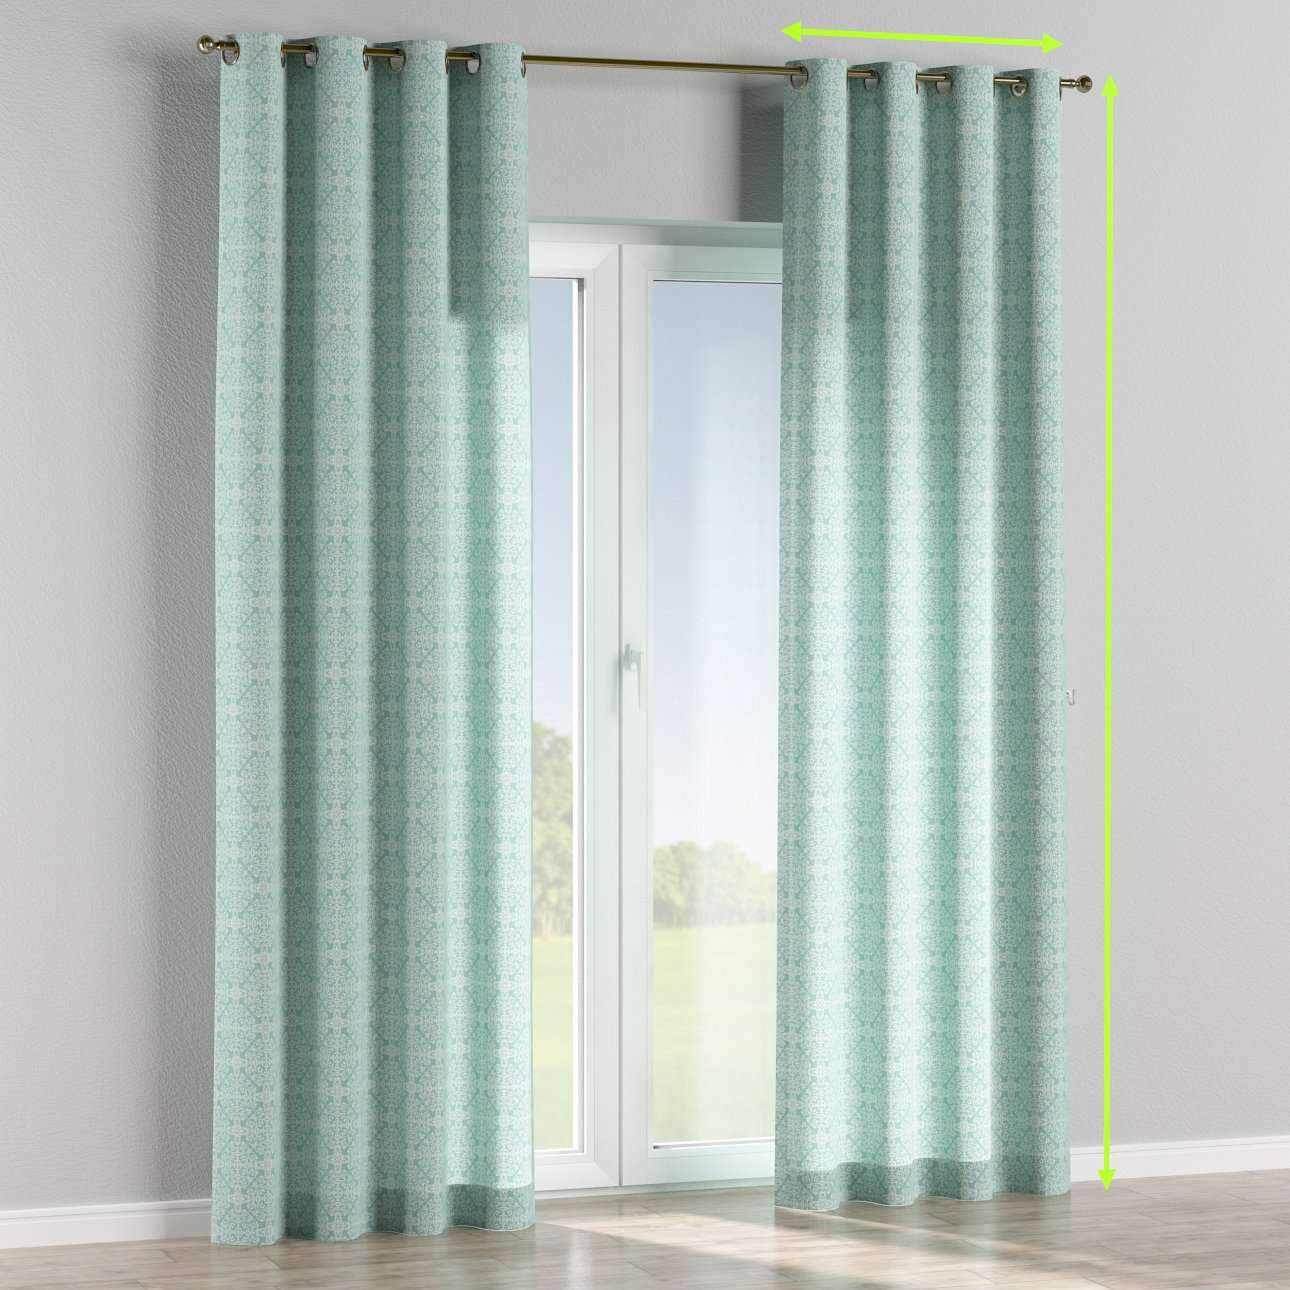 Eyelet lined curtains in collection Flowers, fabric: 140-37